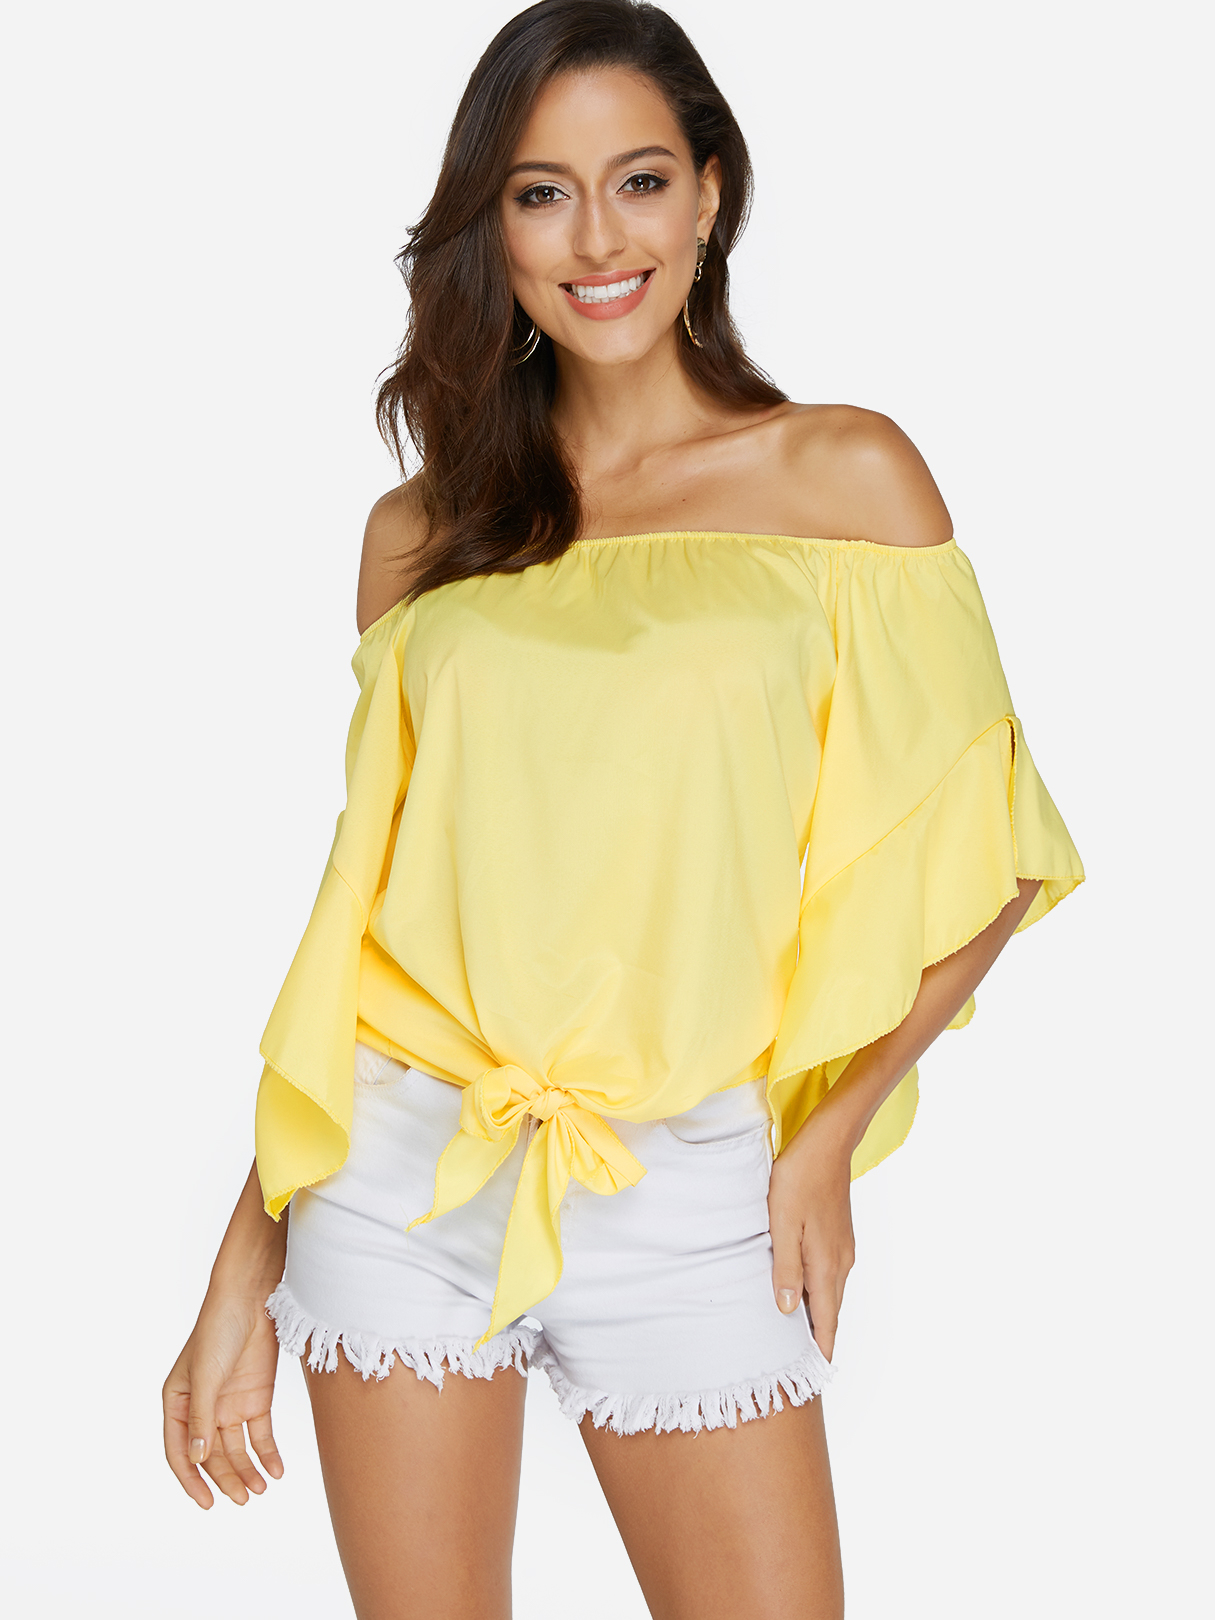 где купить Yellow Lace-up Design Off The Shoulder Bell Sleeves Blouse дешево